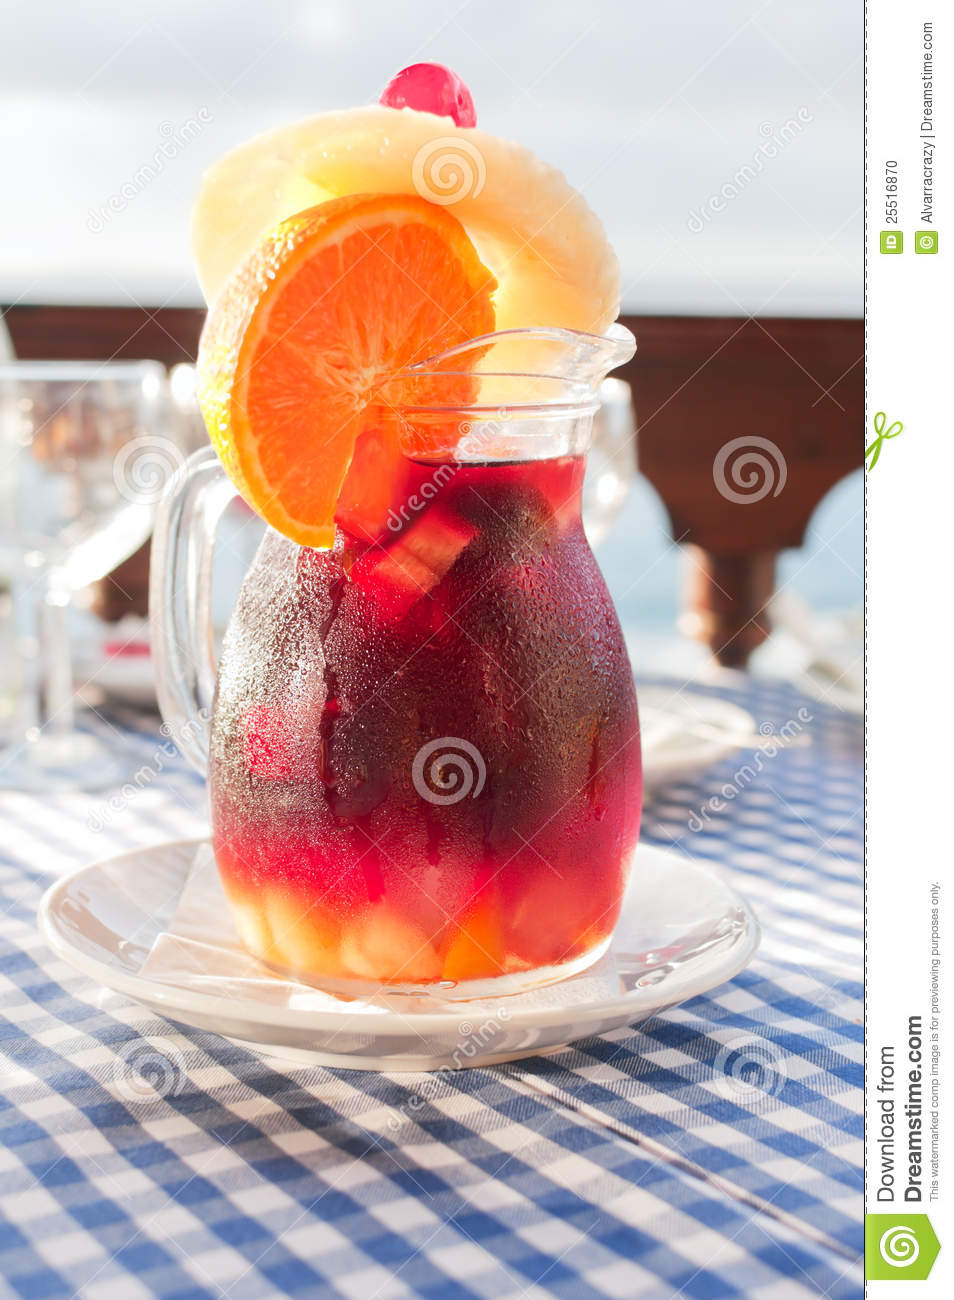 sangria froide dans la cruche en verre avec le condensat photo stock image 25516870. Black Bedroom Furniture Sets. Home Design Ideas